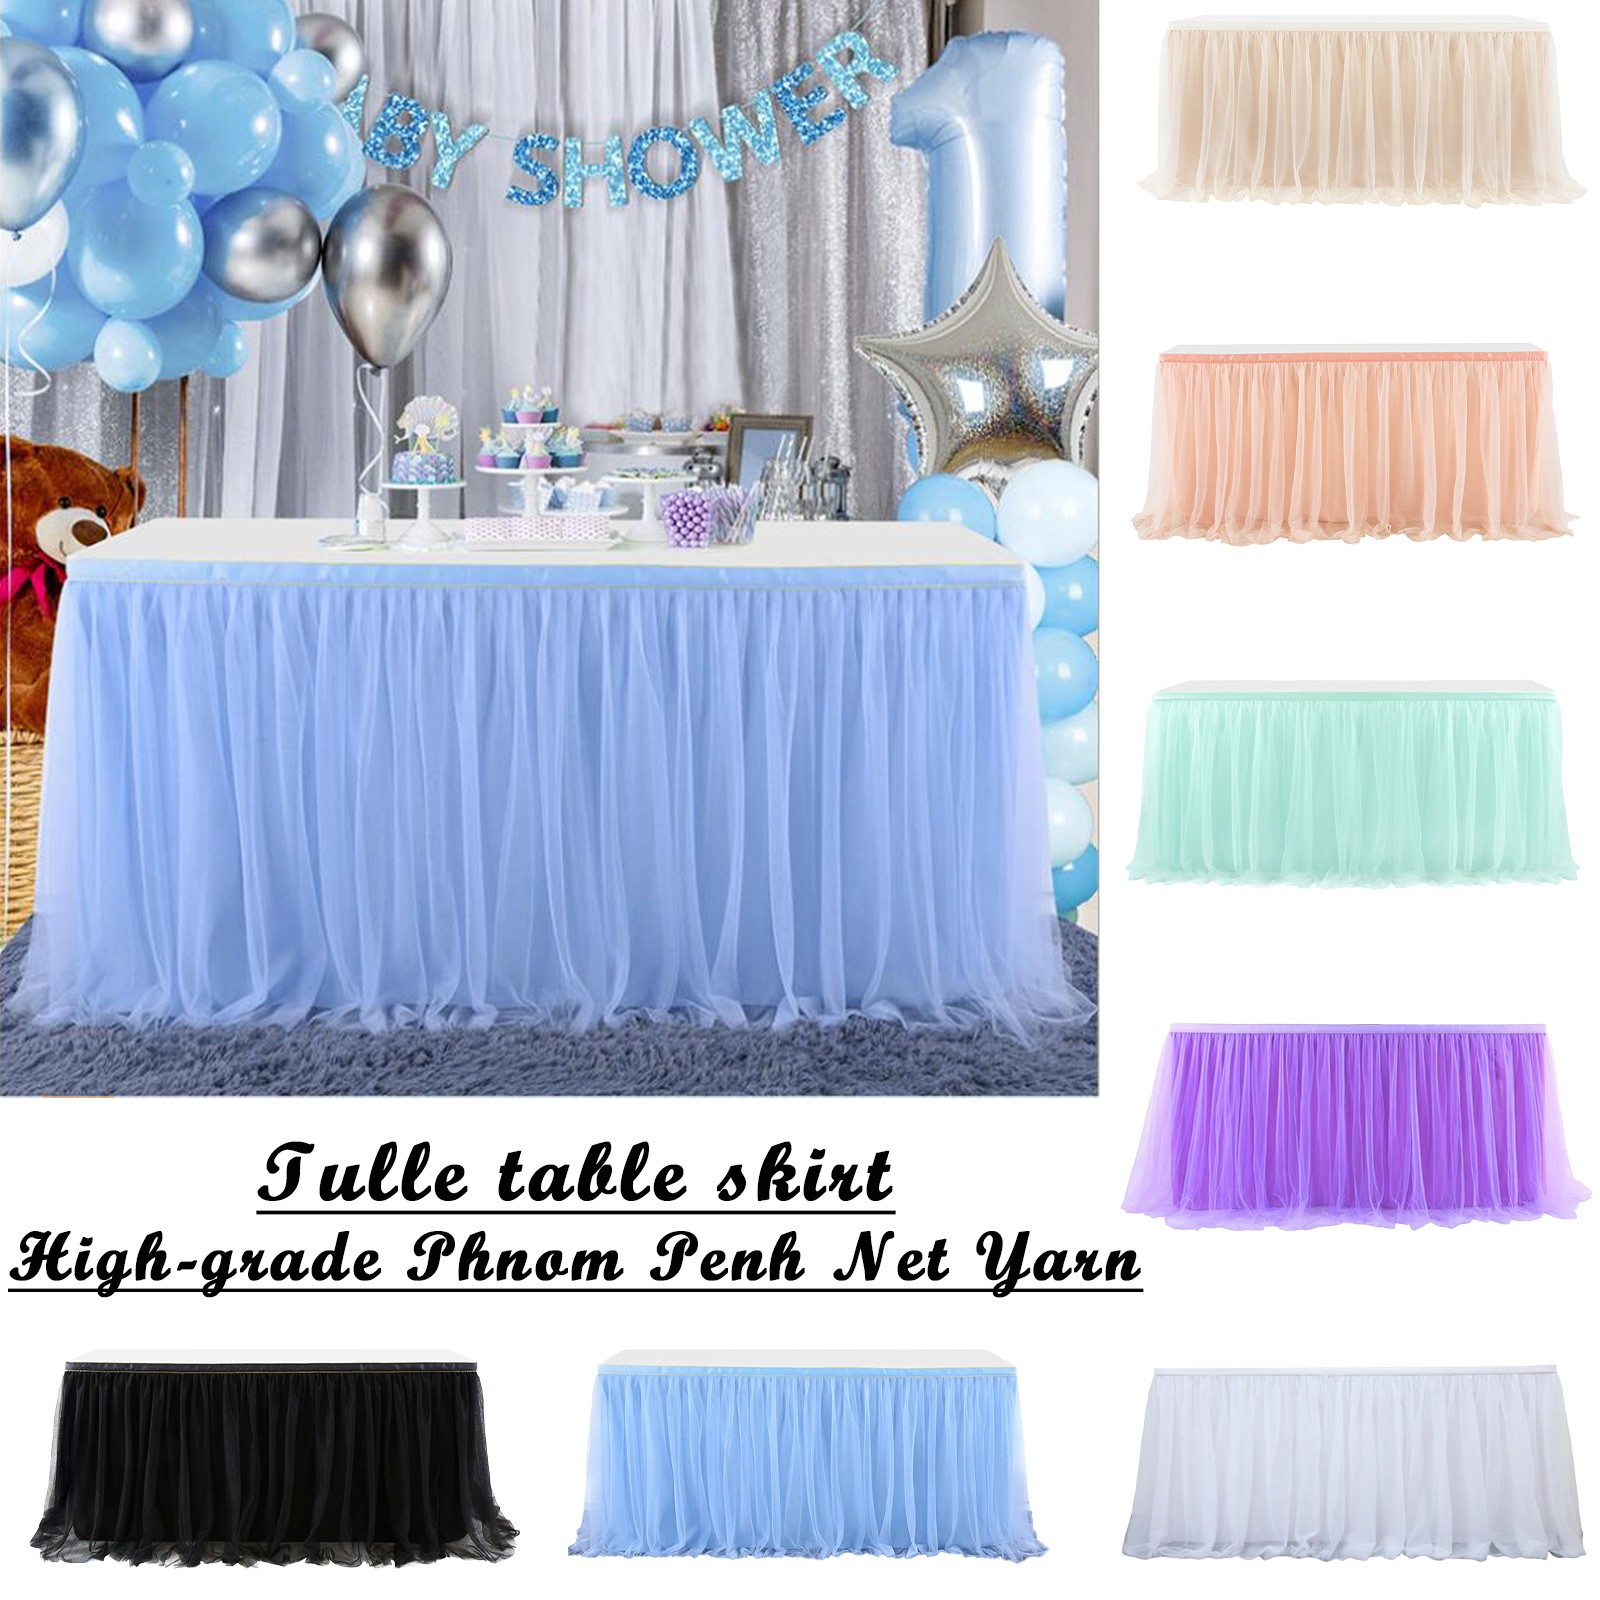 2021 Wedding Party Tutu Tulle Table Skirt Cover Tableware Cloth Baby Shower Party Home Decoration Table Skirting Birthday Decor